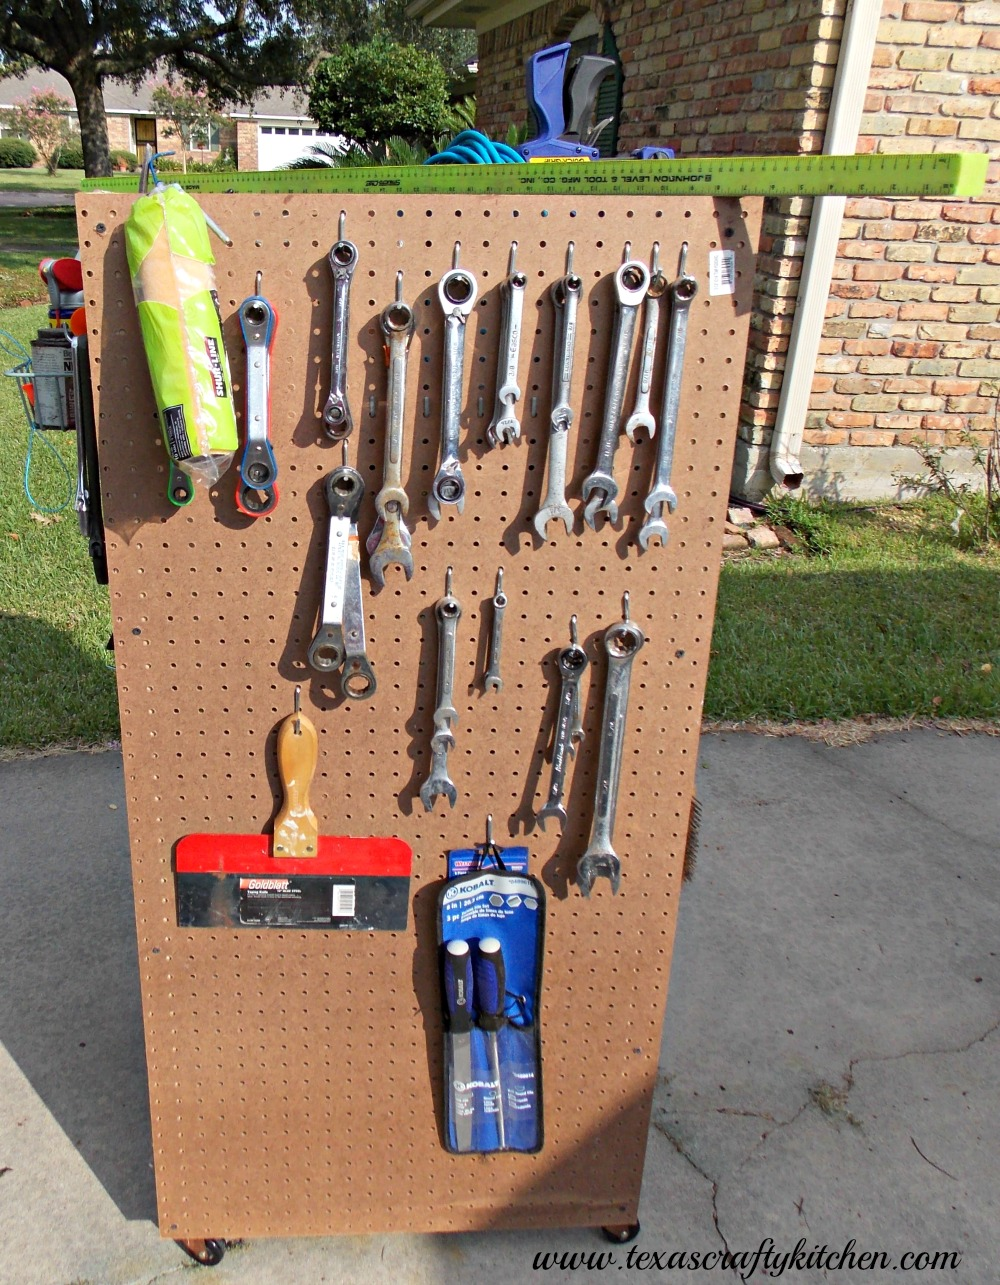 Super Easy DIY Tool Cart. A great way to organize your tools and so much more! Need one for your craft room? This would be perfect! If you know how to screw in wood screws, you can make one too!